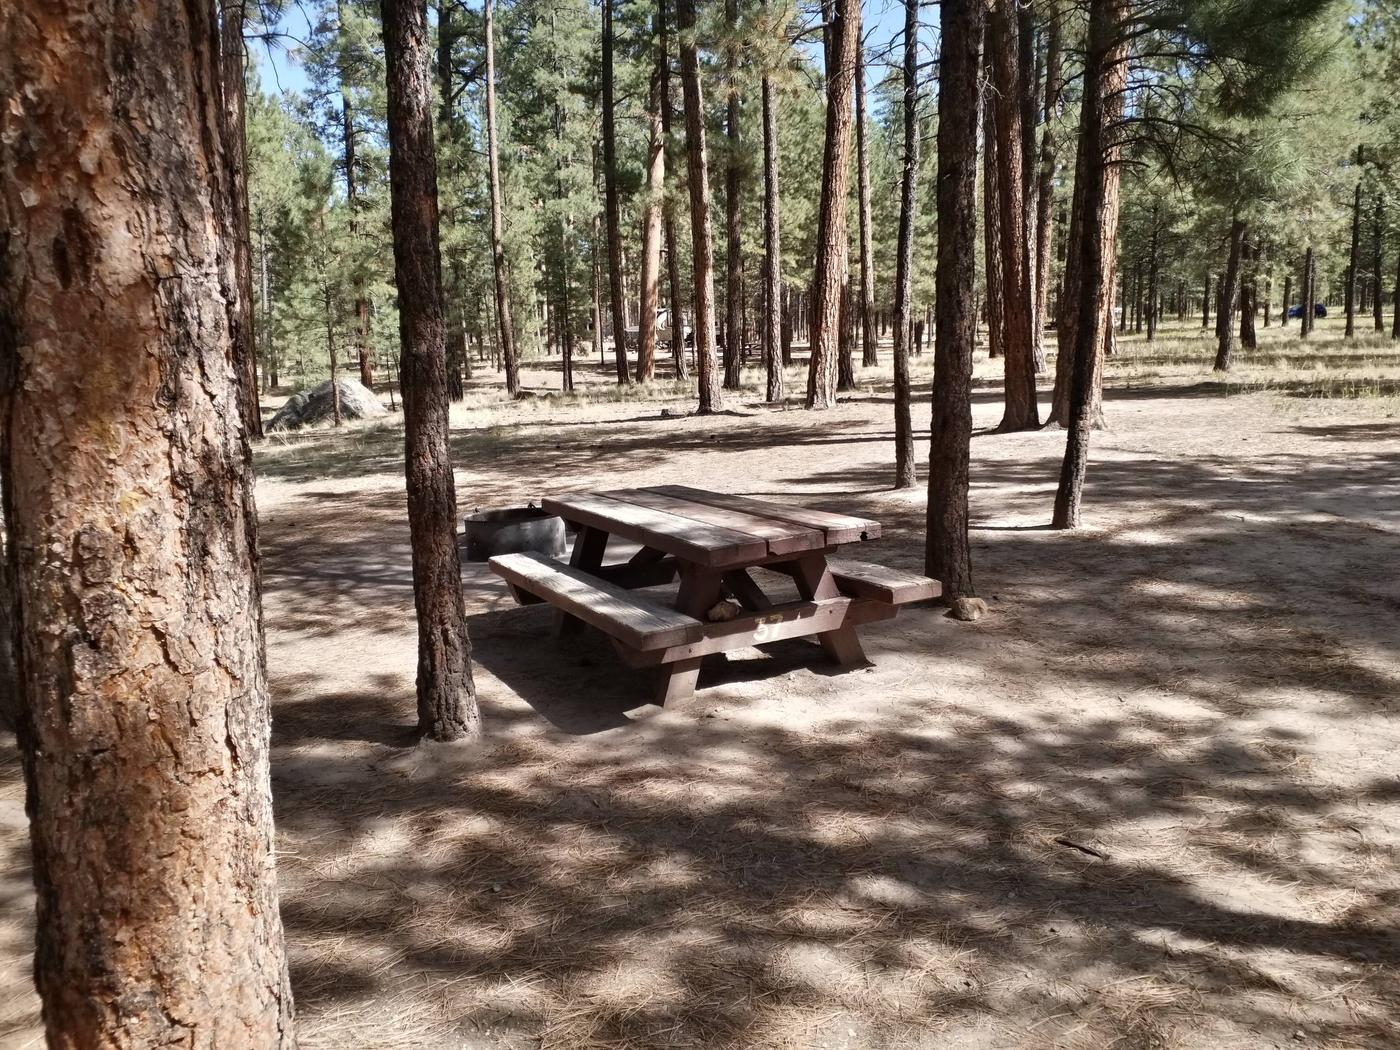 Site 37 has young ponderosa pines shading the picnic table and fire ring.Site 37